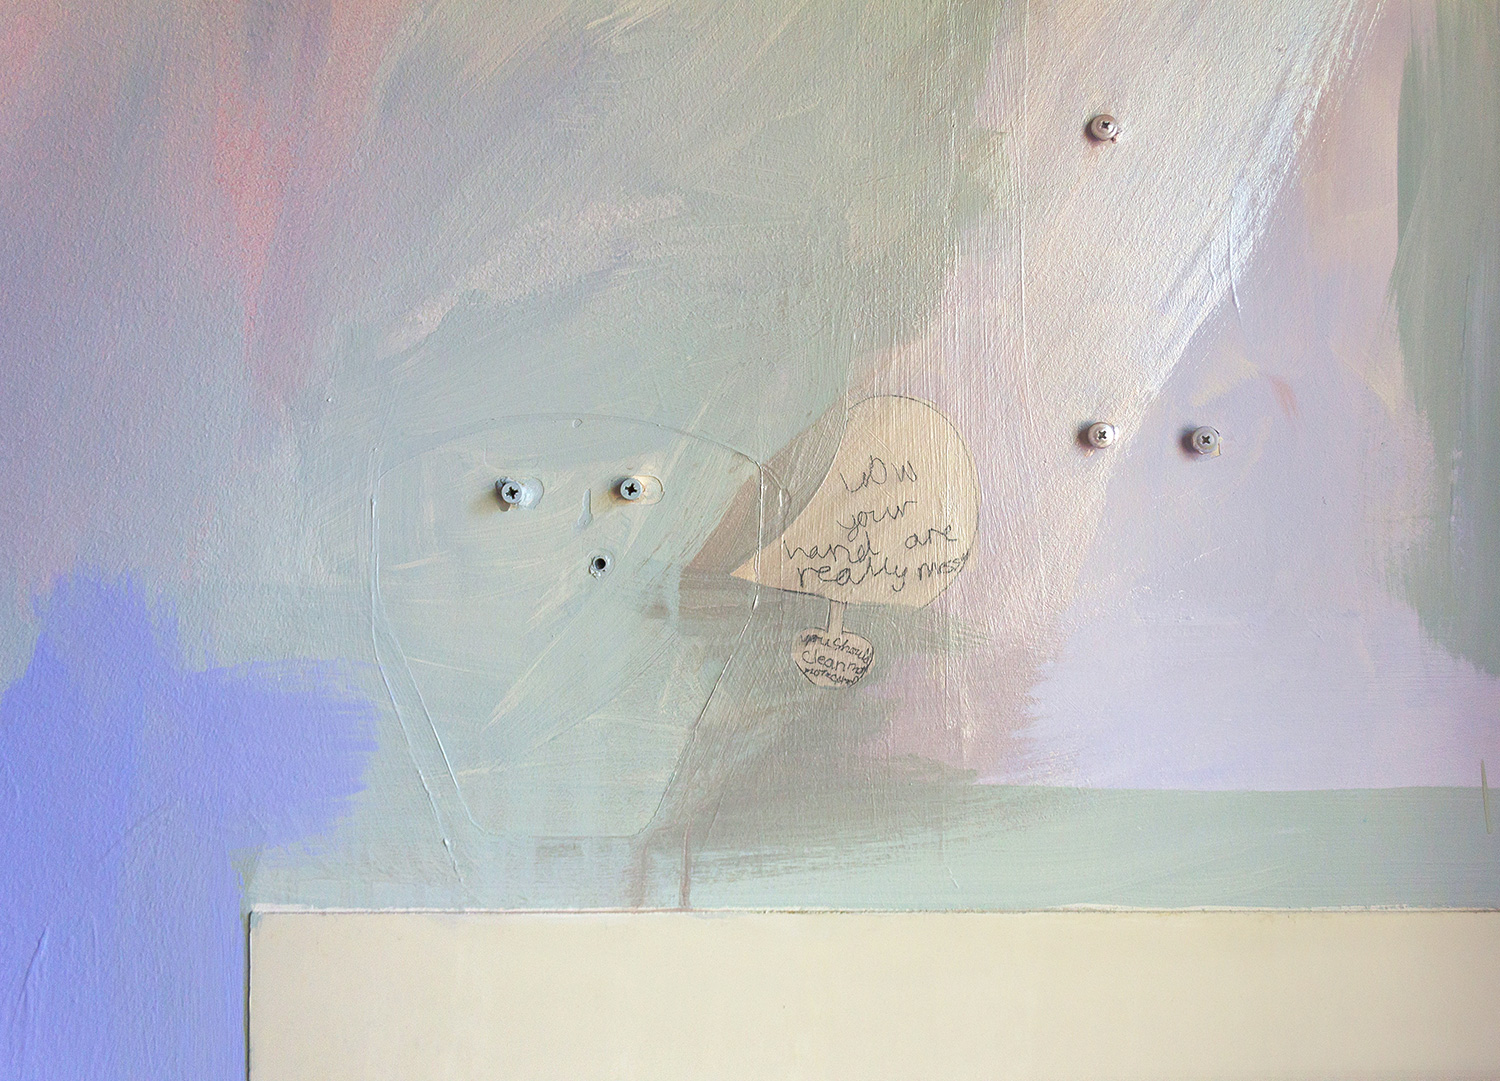 Close up detail of abstract pastel mural featuring a speech bubble with words scribbled by a child. 'Wow your hand are really messy you should clean them.""